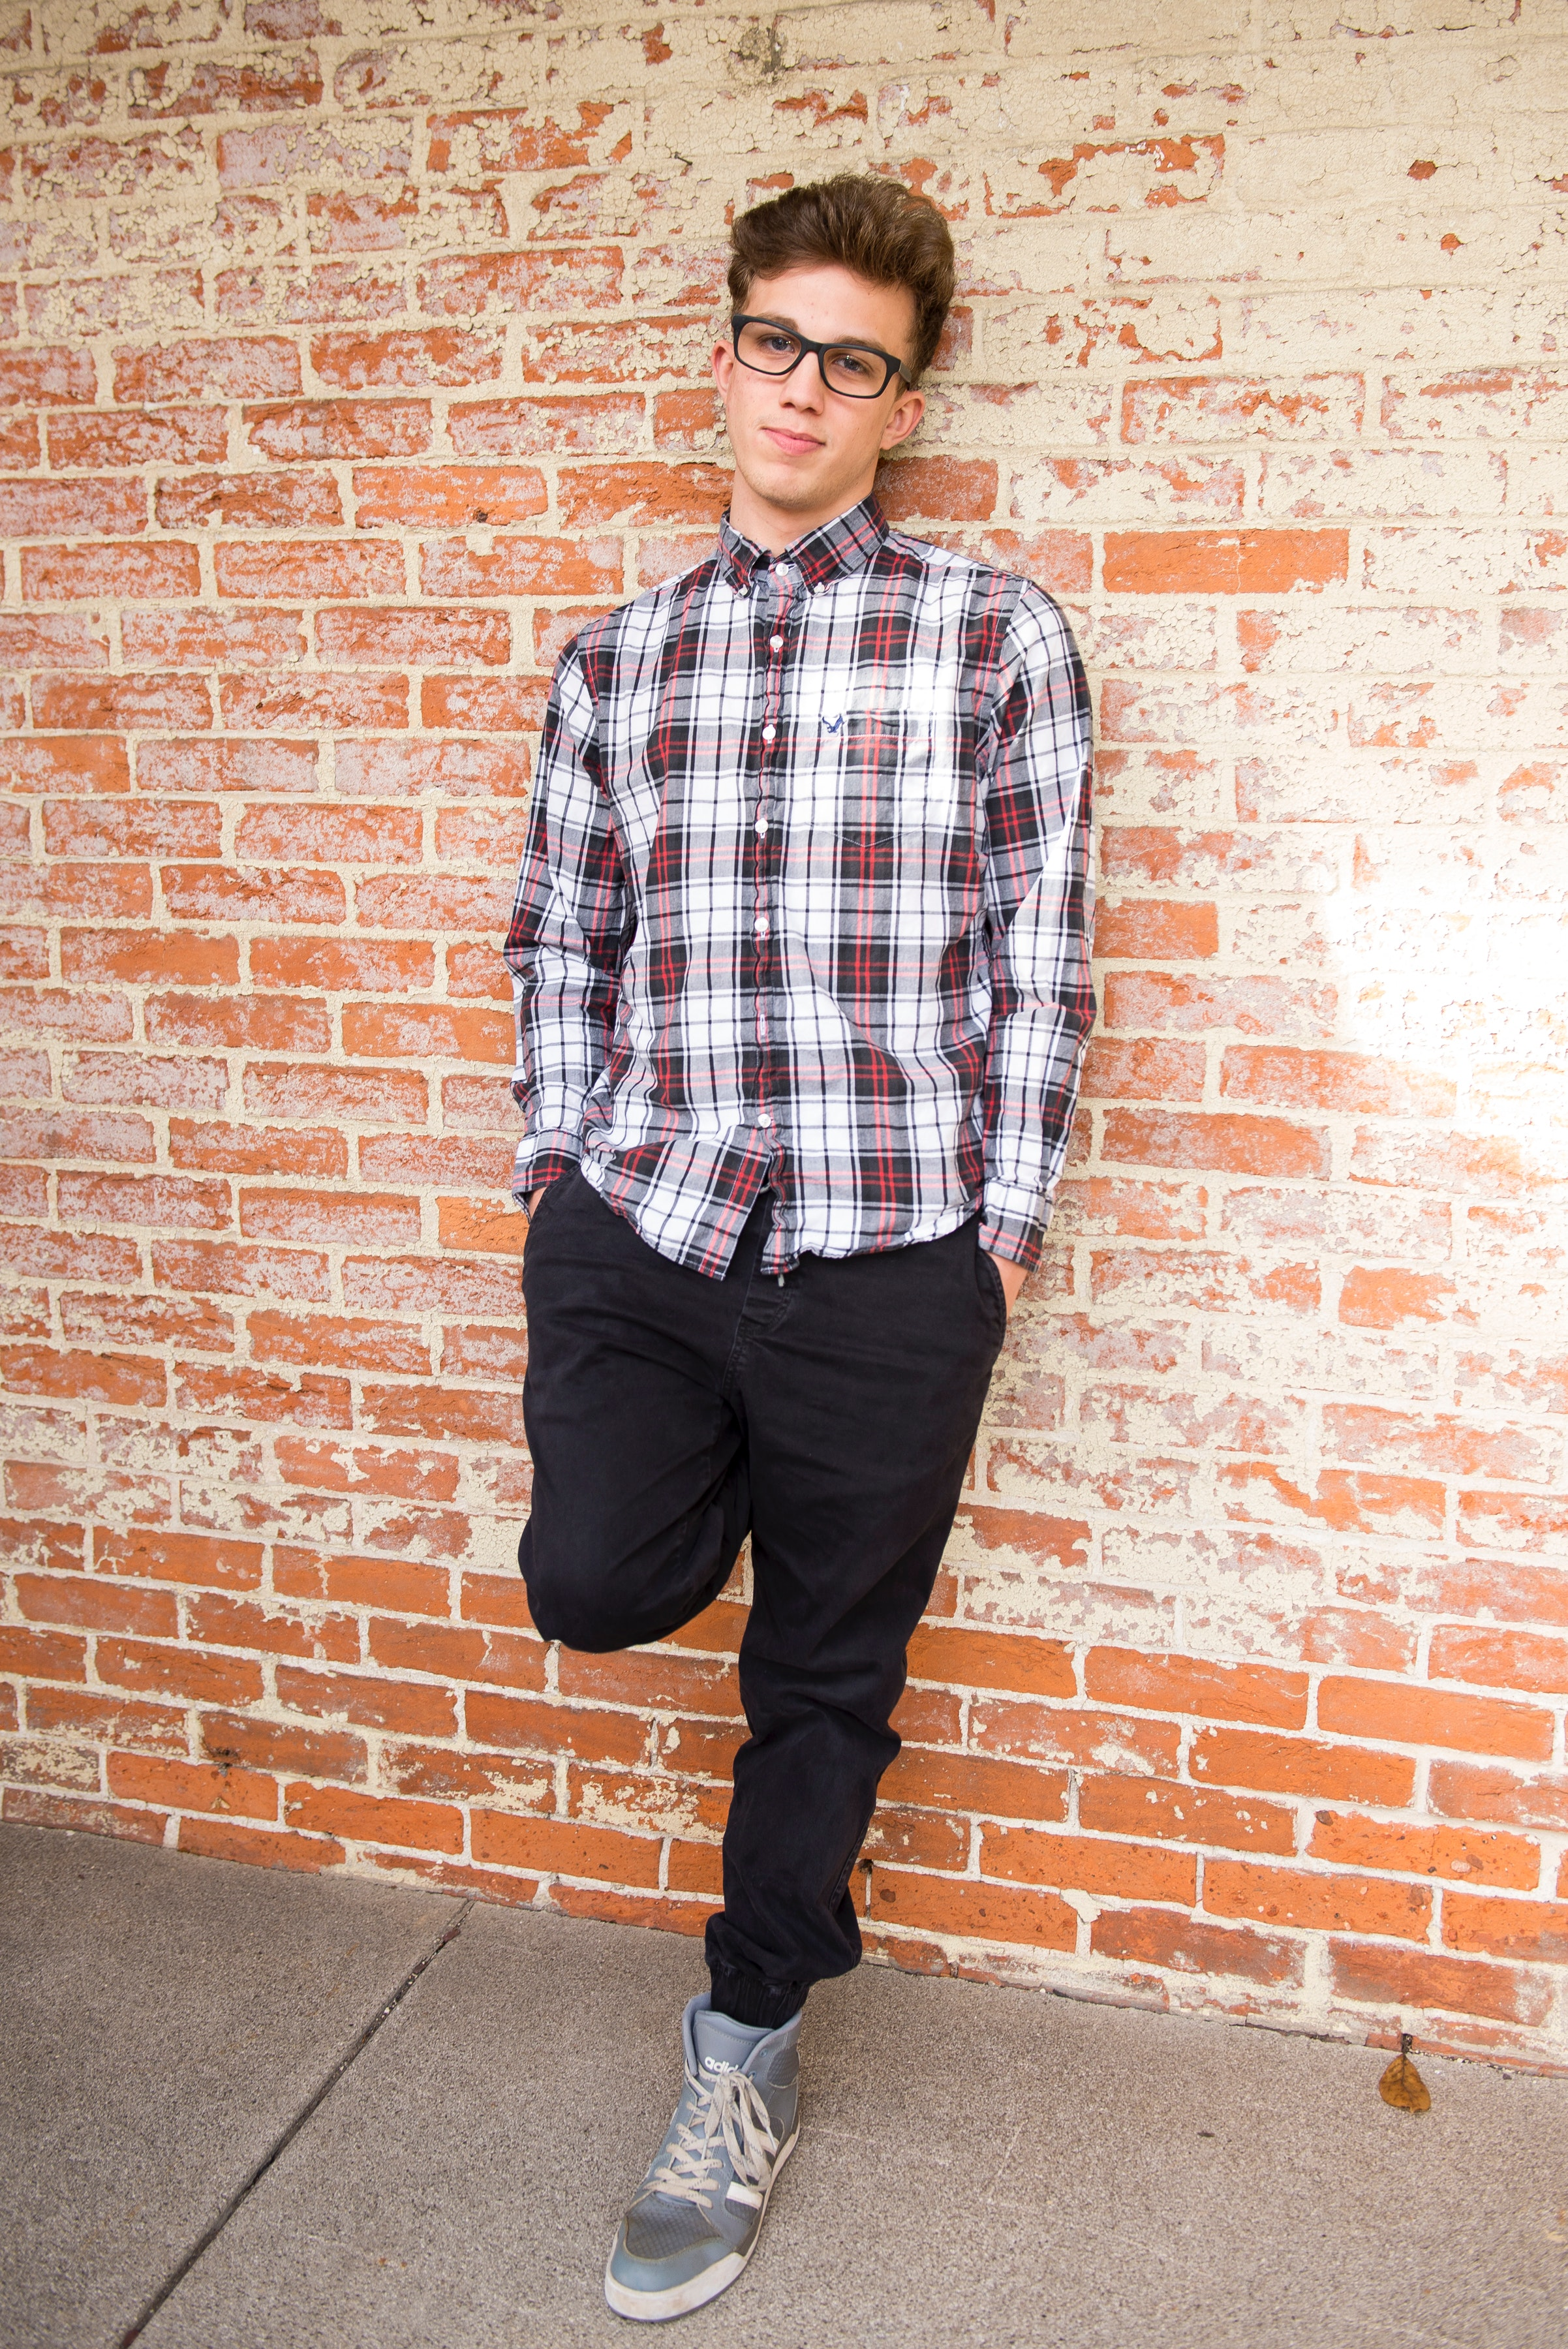 Man Wearing Red And White Plaid Dress Shirt And Black Pants, Boy, Pants, Young, Wear, HQ Photo